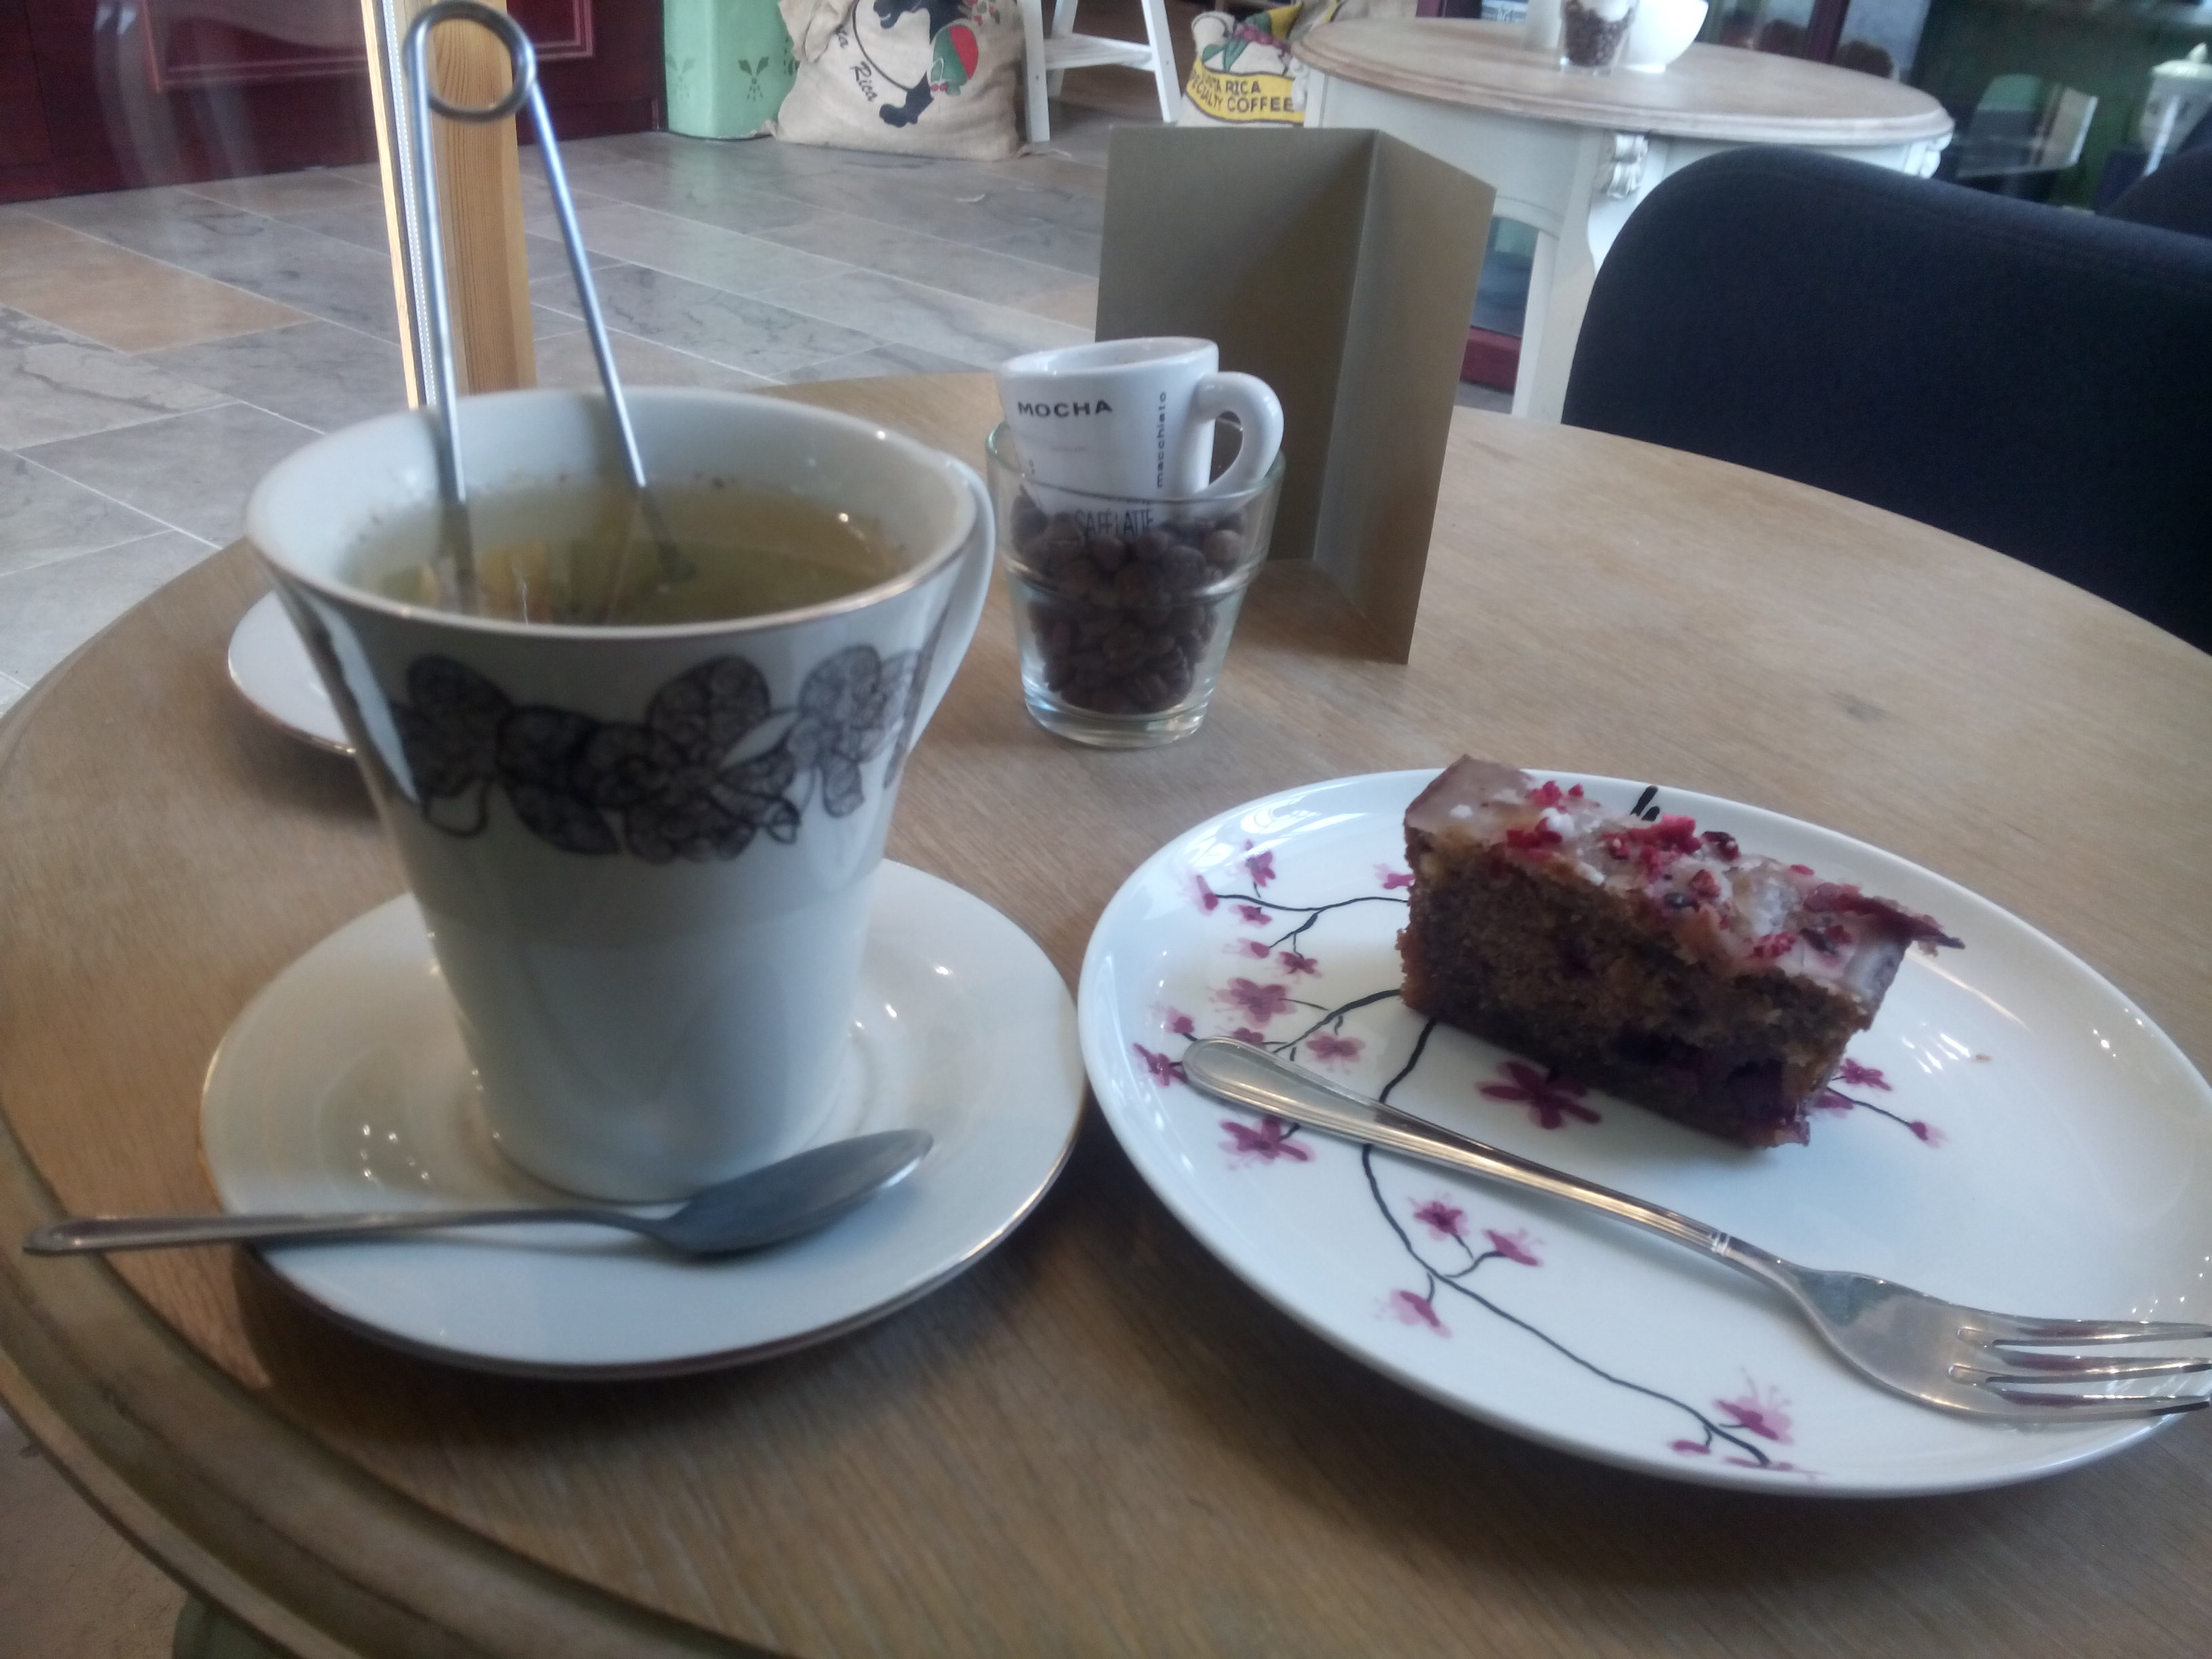 Two china plates on a table, one with a cup of green tea, the other with a slice of iced cake and a fork